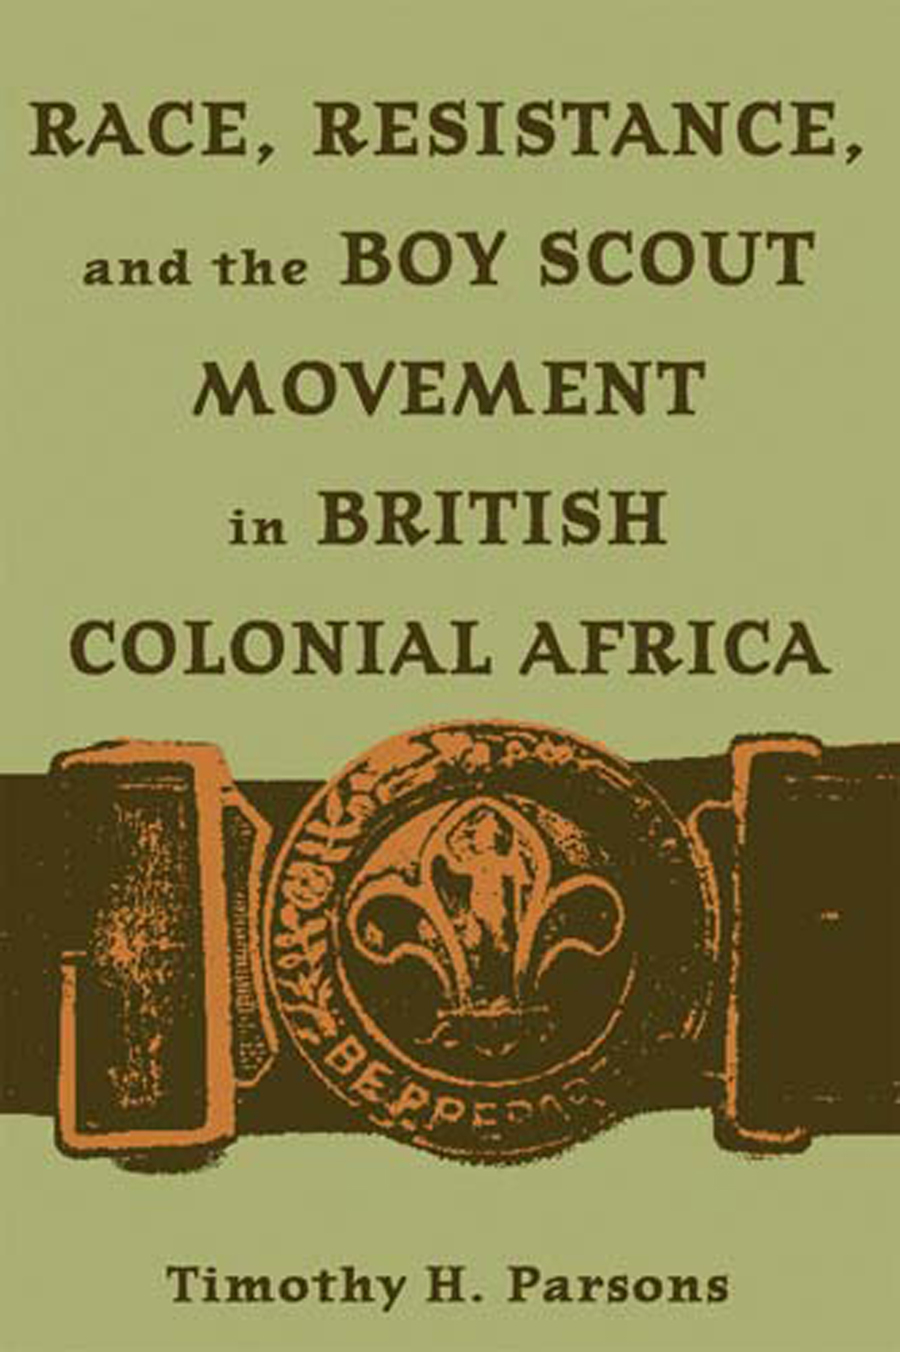 essays on british colonialism The statement of british colonialism being largely beneficial for malaya was indeed very accurate british colonialism has introduced far-reaching changes in most.